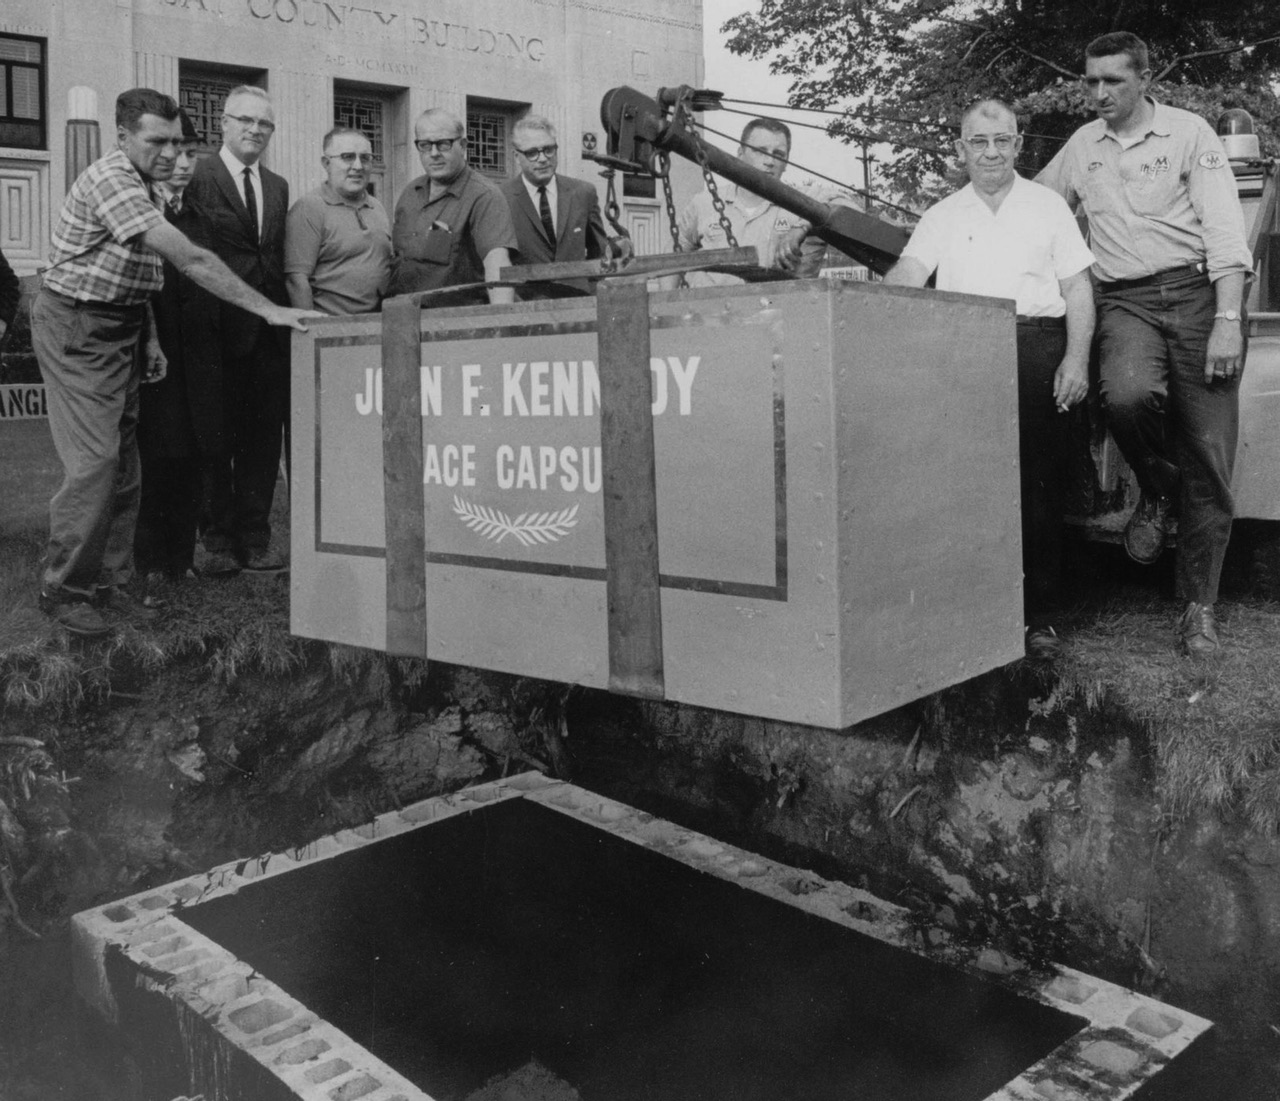 JFK Peace Capsule, 1965, One of the greatest failures in time capsule history